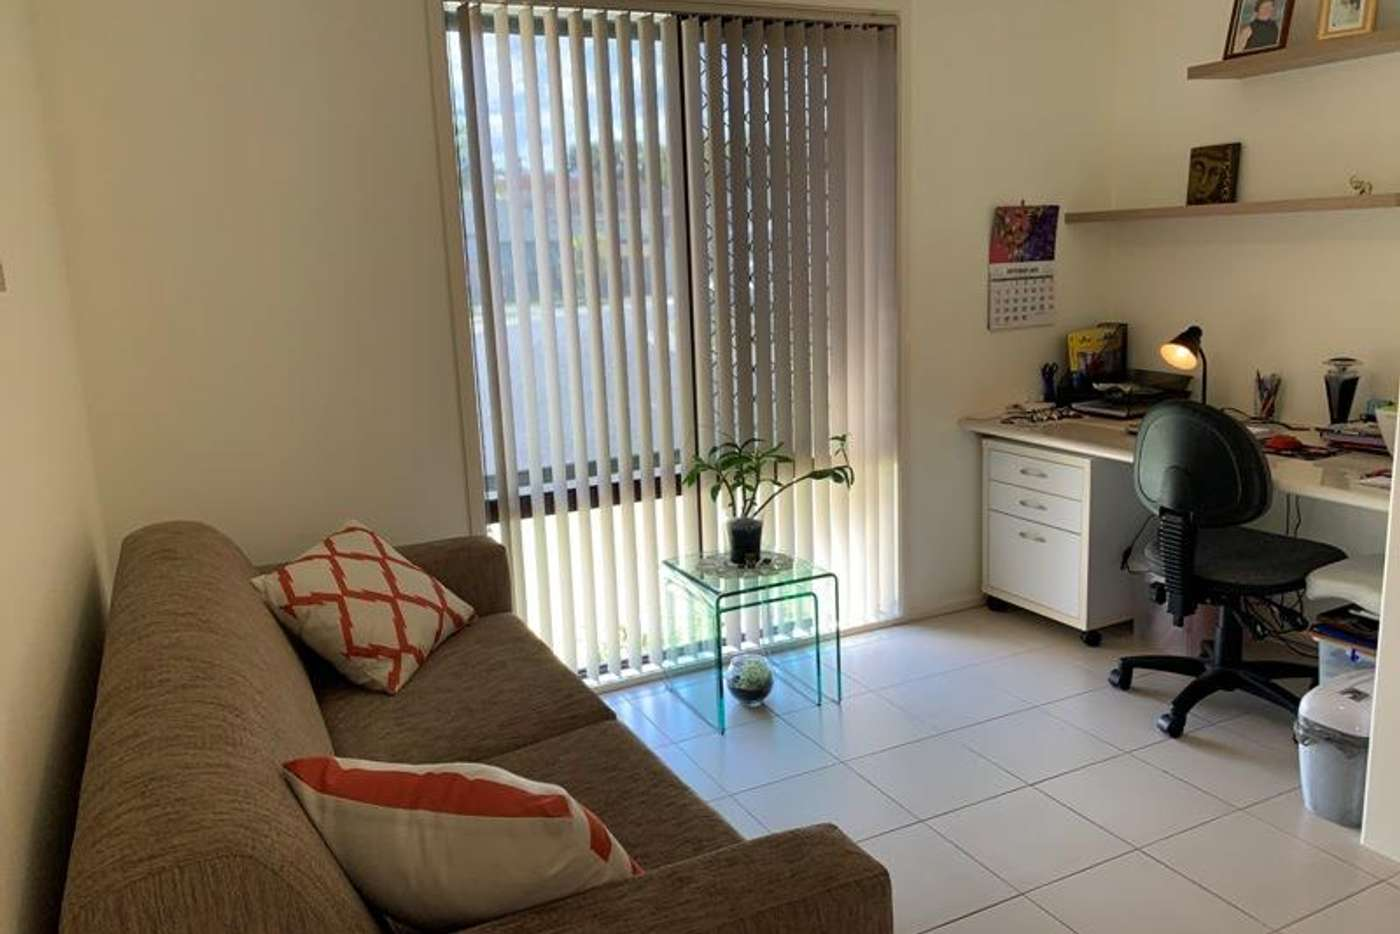 Sixth view of Homely house listing, 227/325 Reedy Creek Road, Burleigh Waters QLD 4220